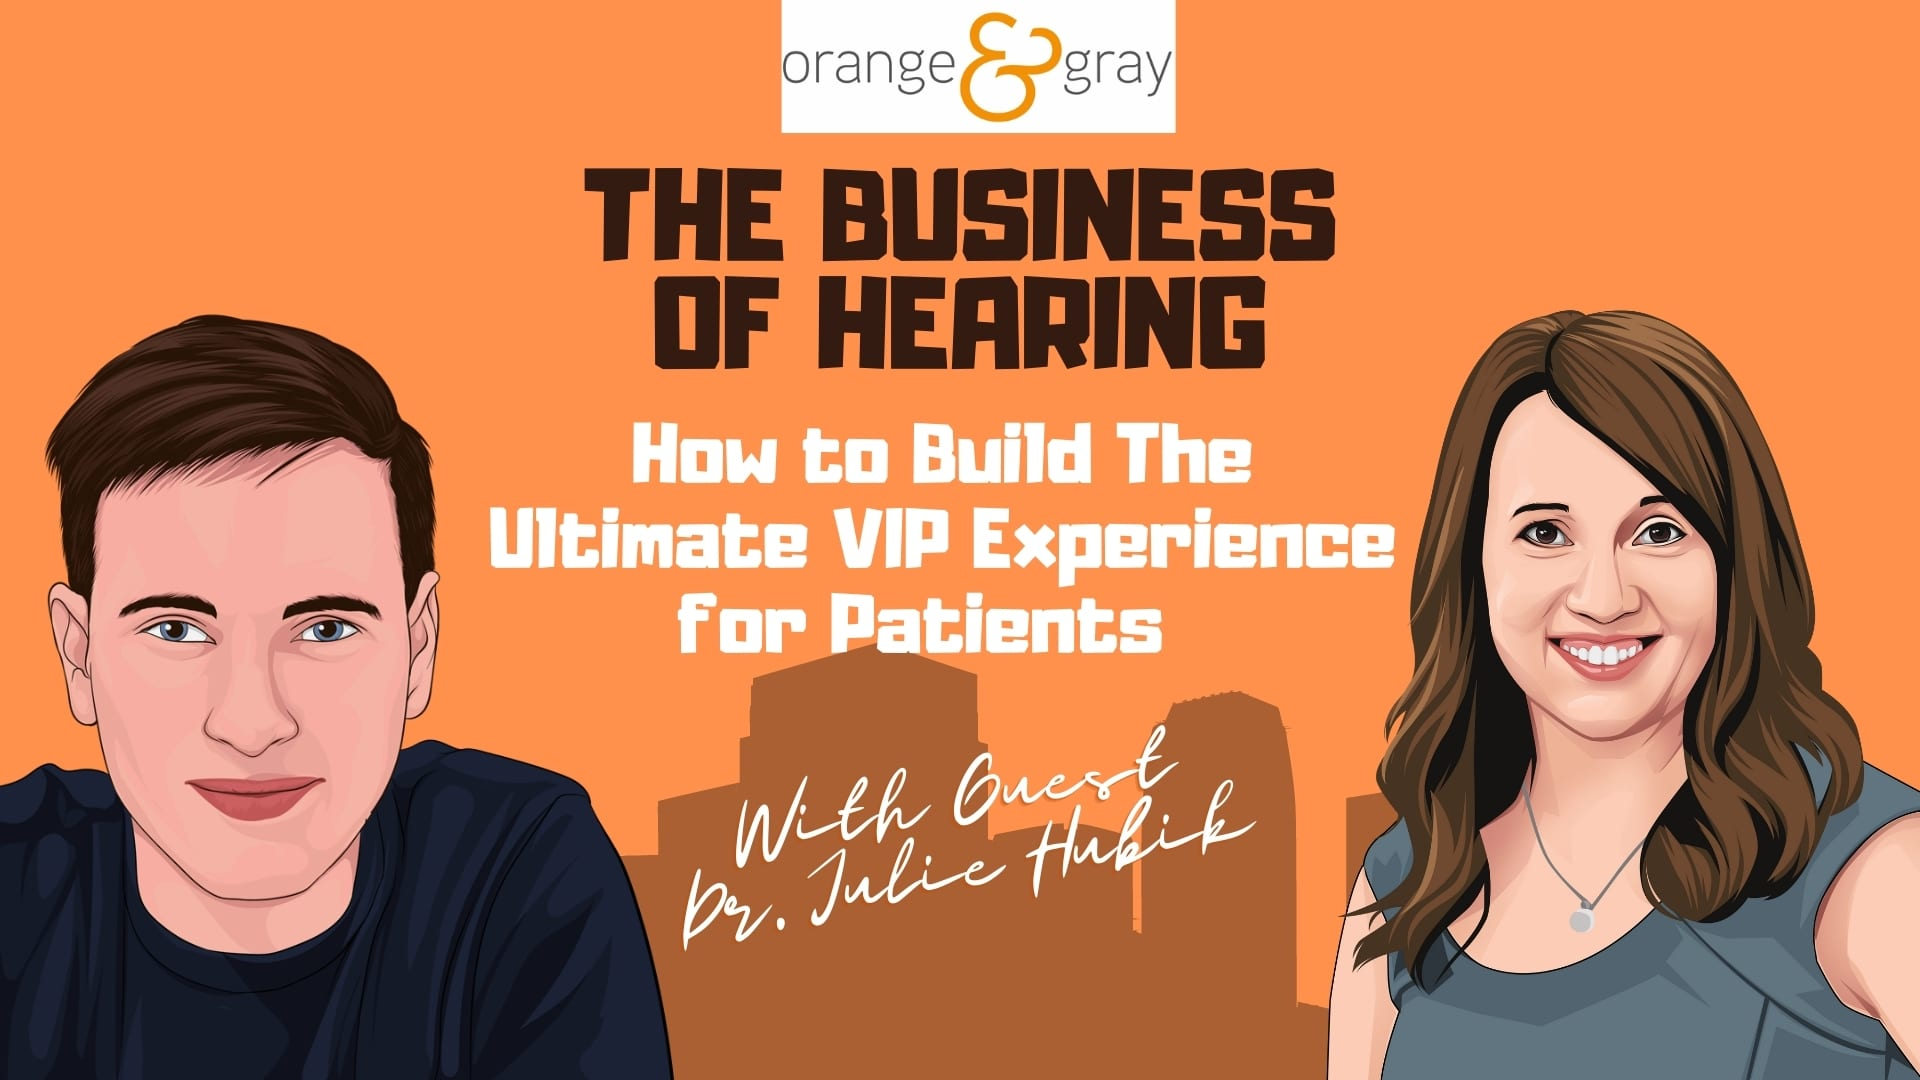 The Business of Hearing Episode 2